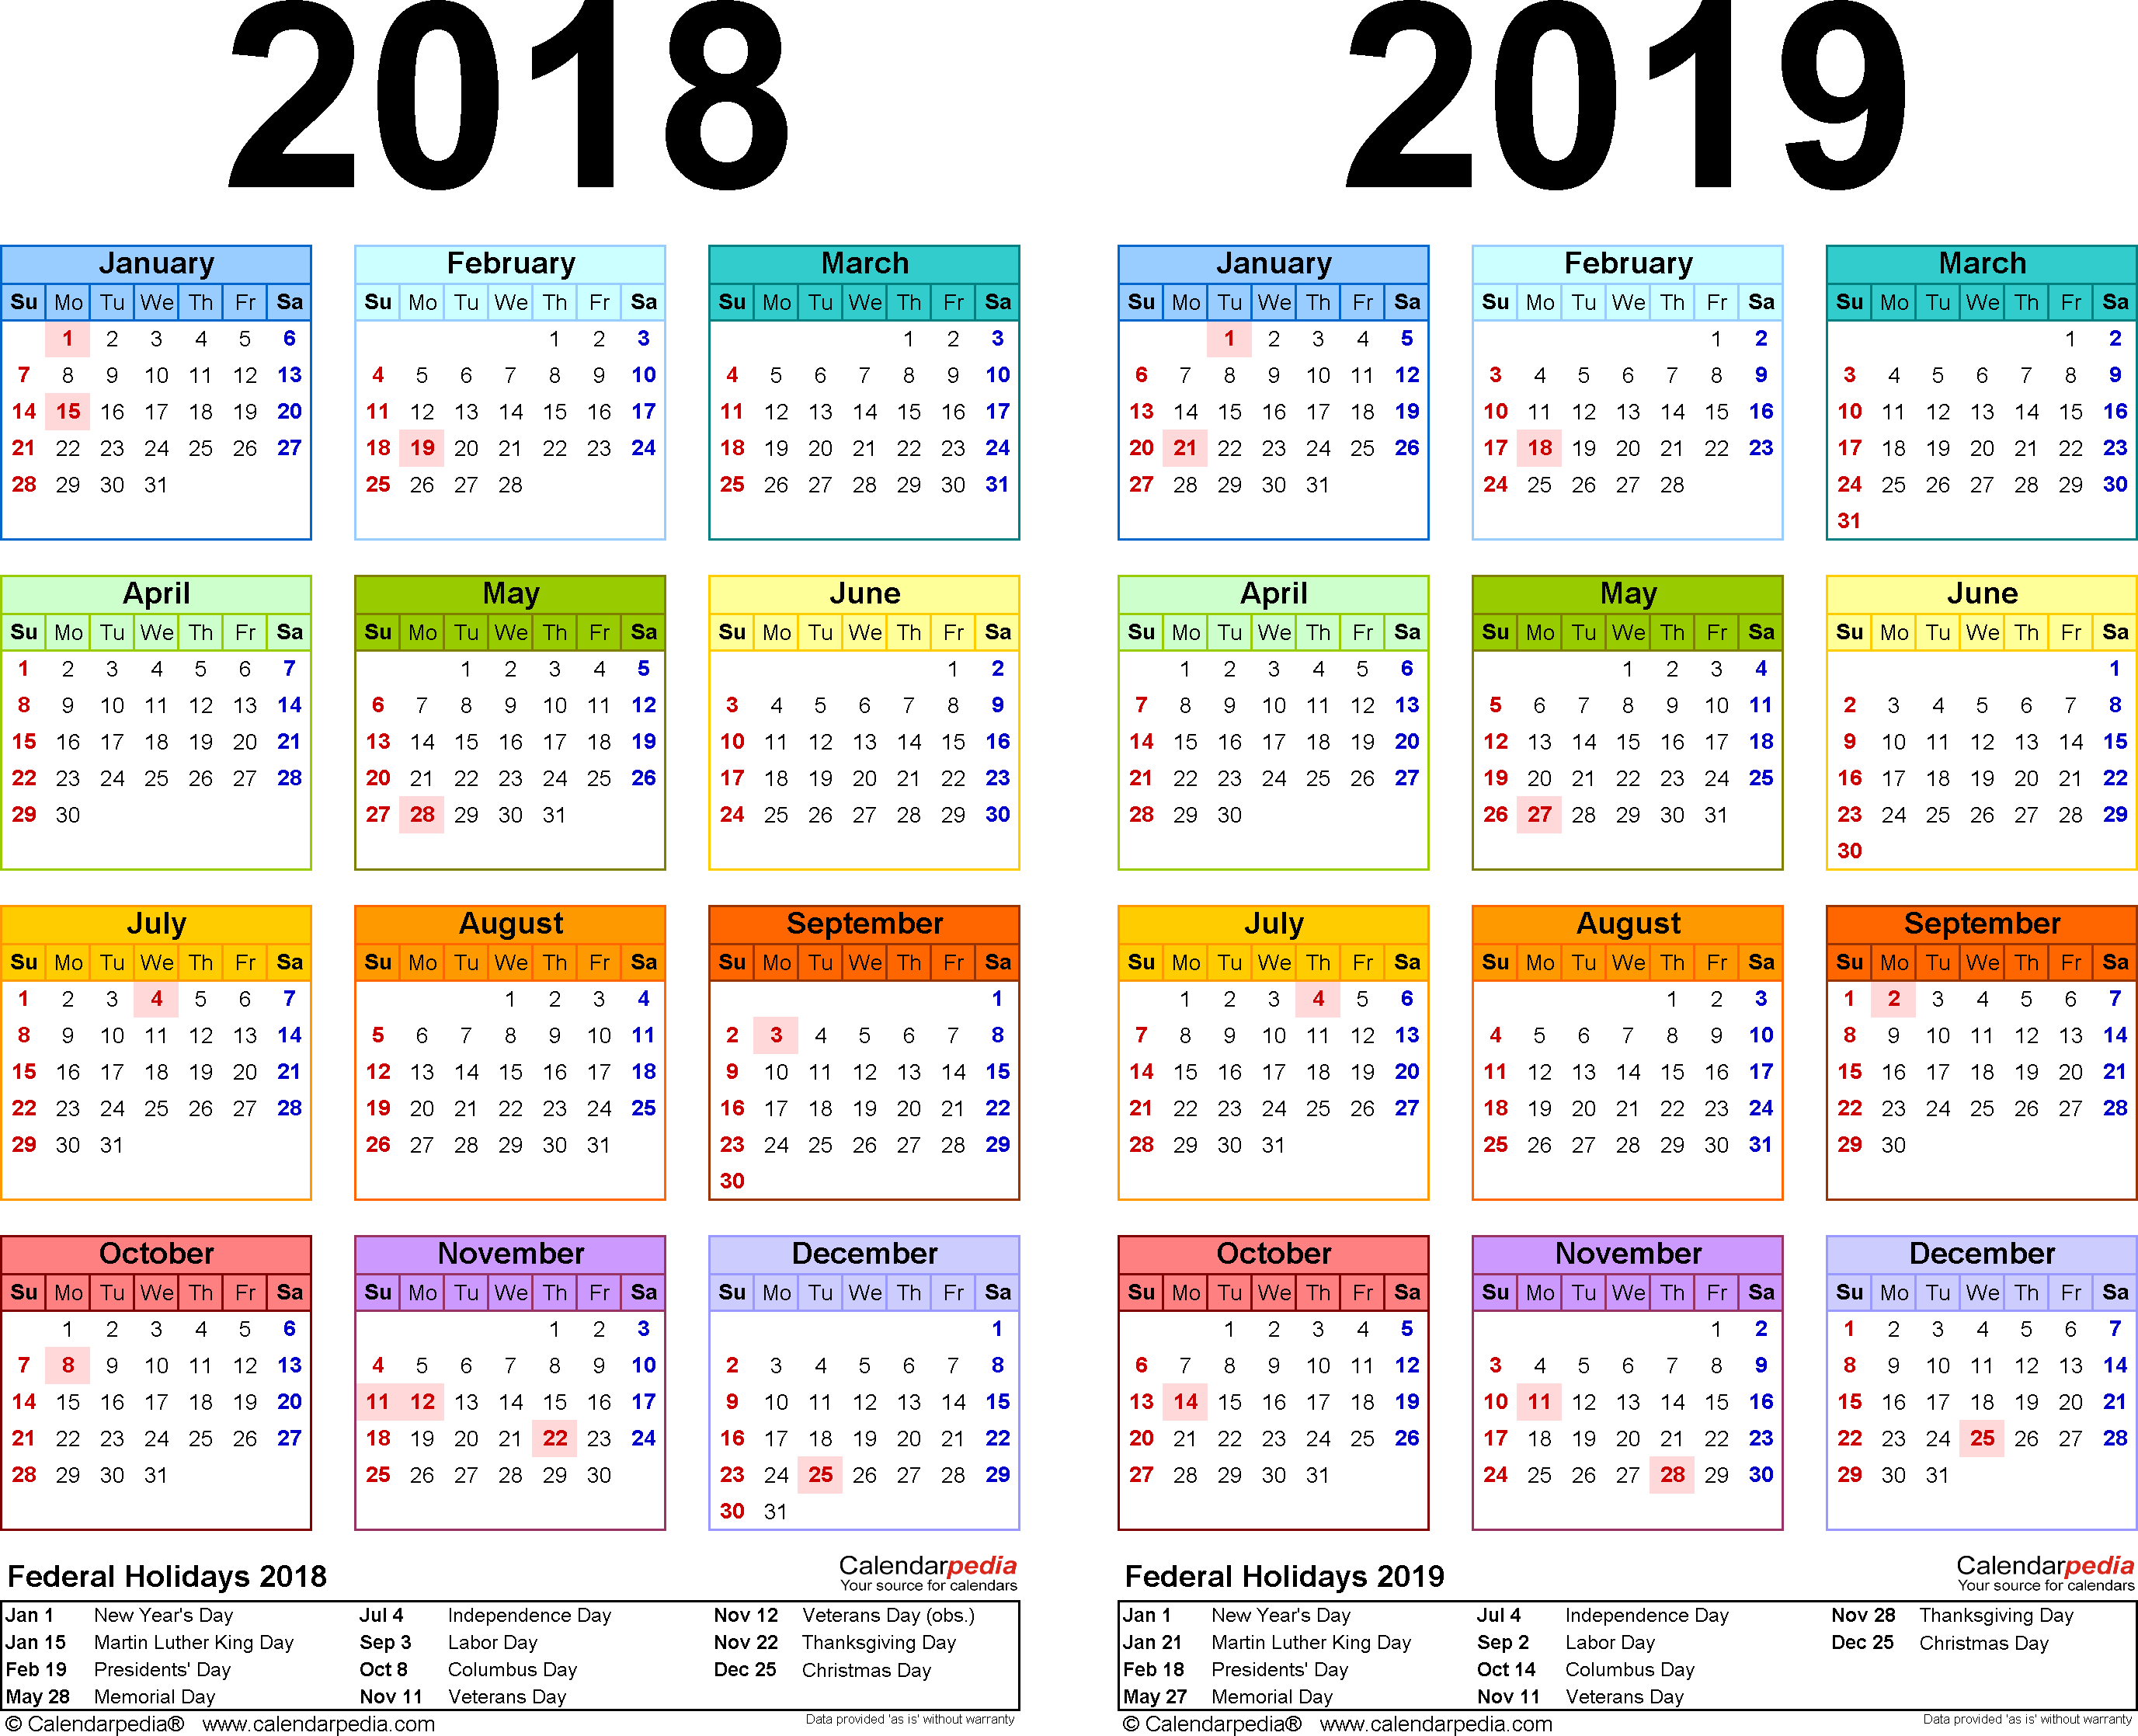 2019-2016 Calendars Calendar 2018/ Calendar 2019 | Schedule calendar template | Yearly